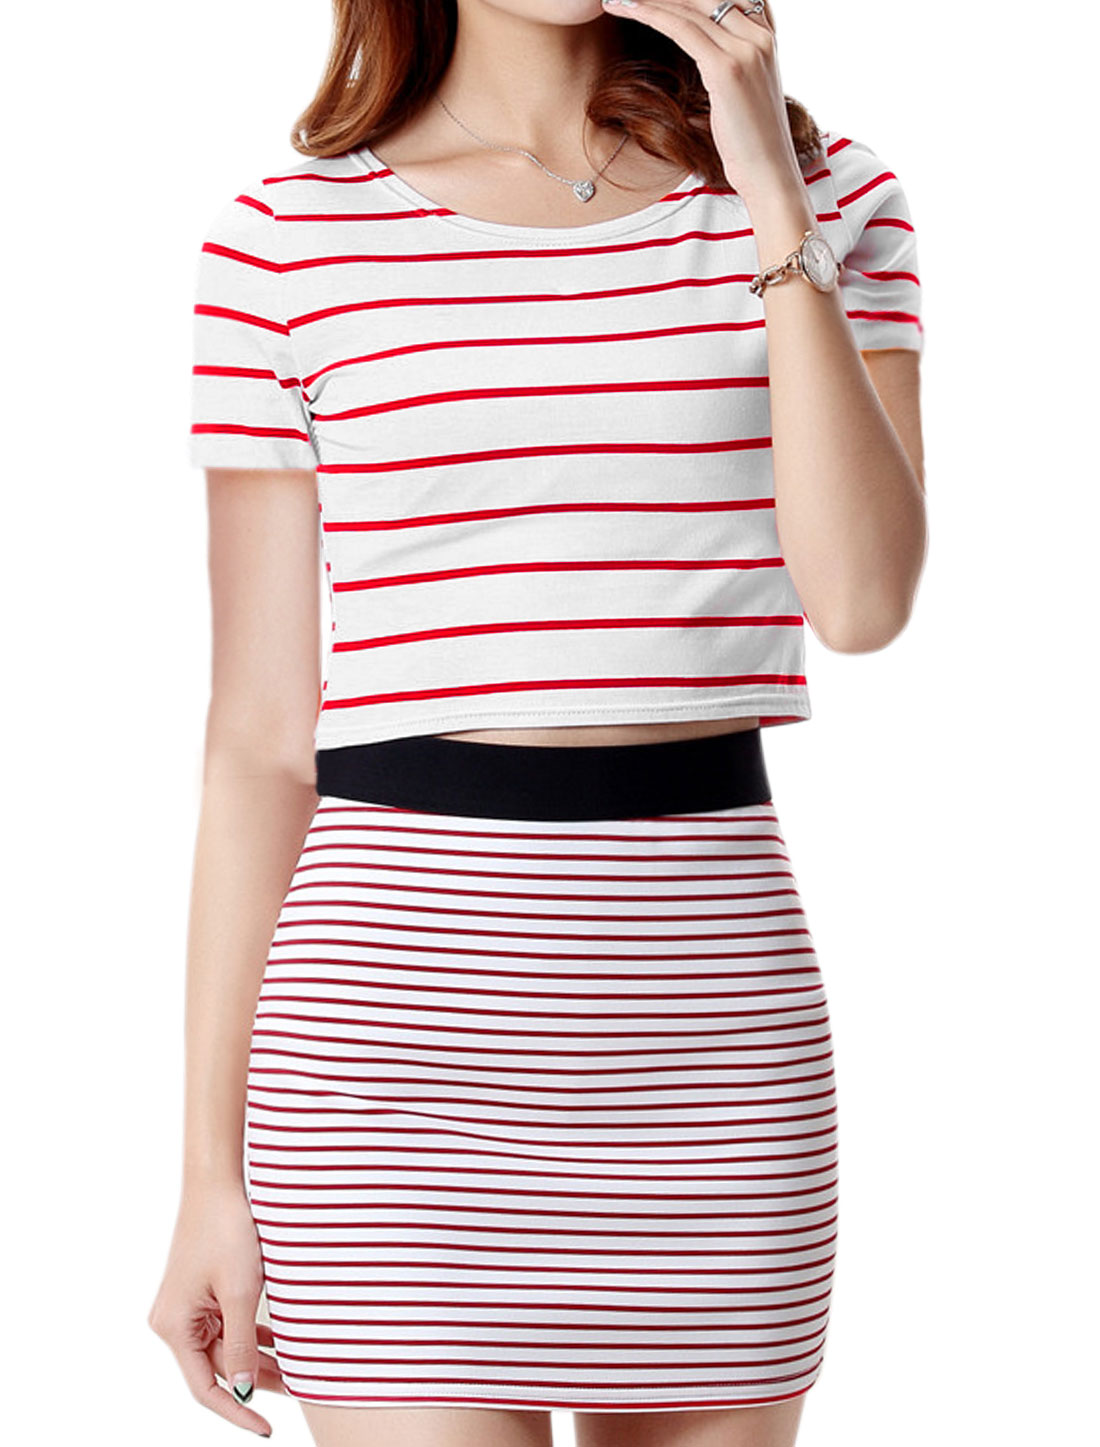 Ladies Round Neck Short Sleeves Stripes Slim Fit Crop Top Red S